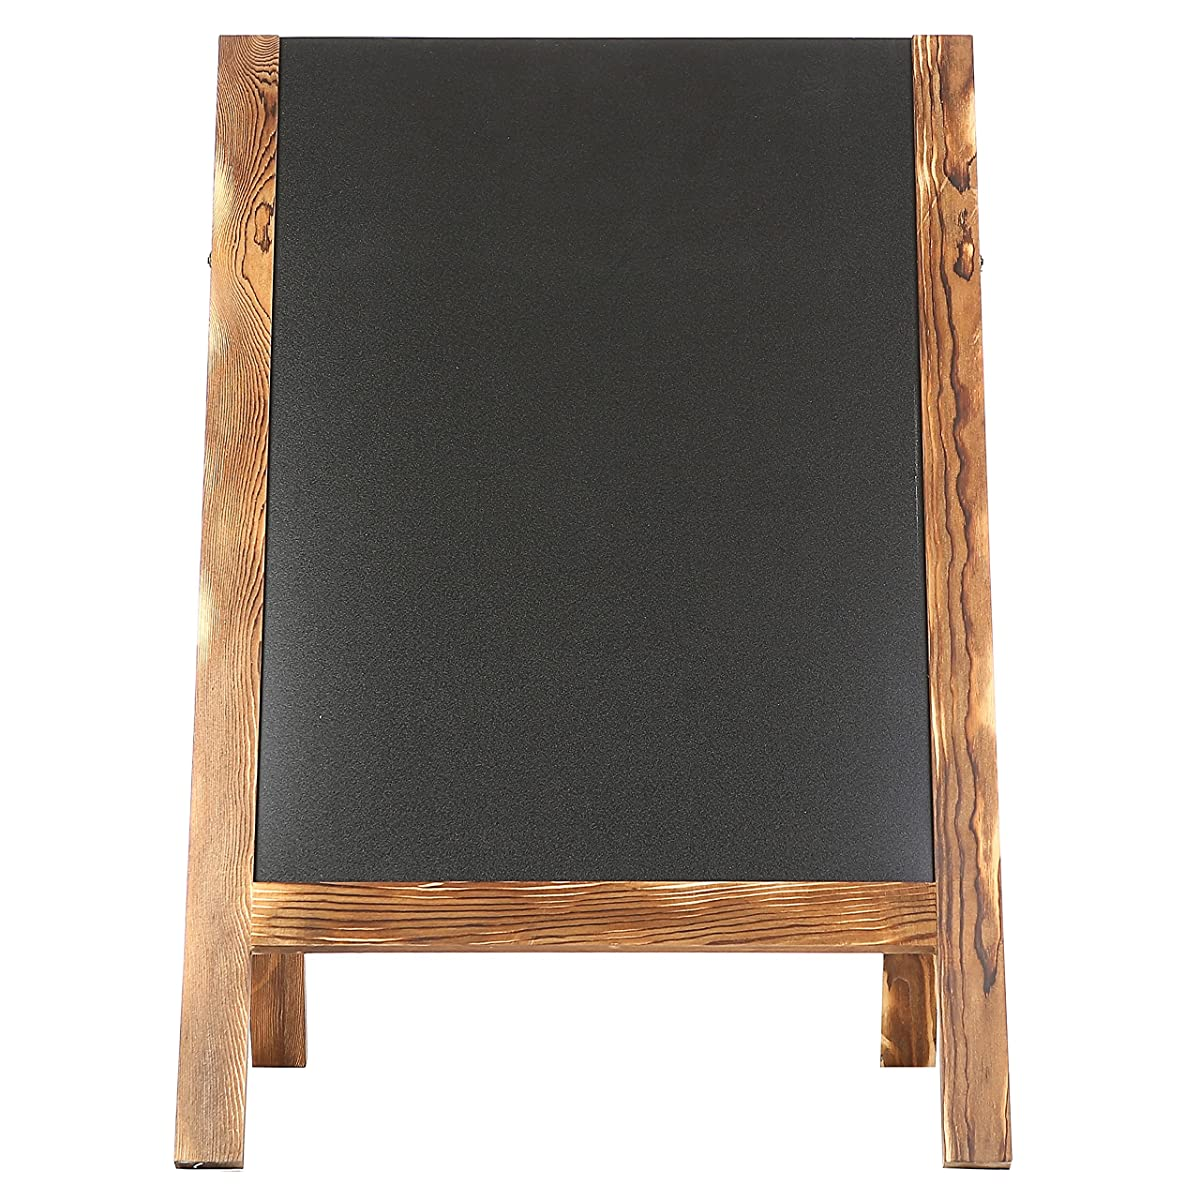 Rustic Wood A-Frame Double-Sided Chalkboard, Sidewalk Sandwich Message Board Sign